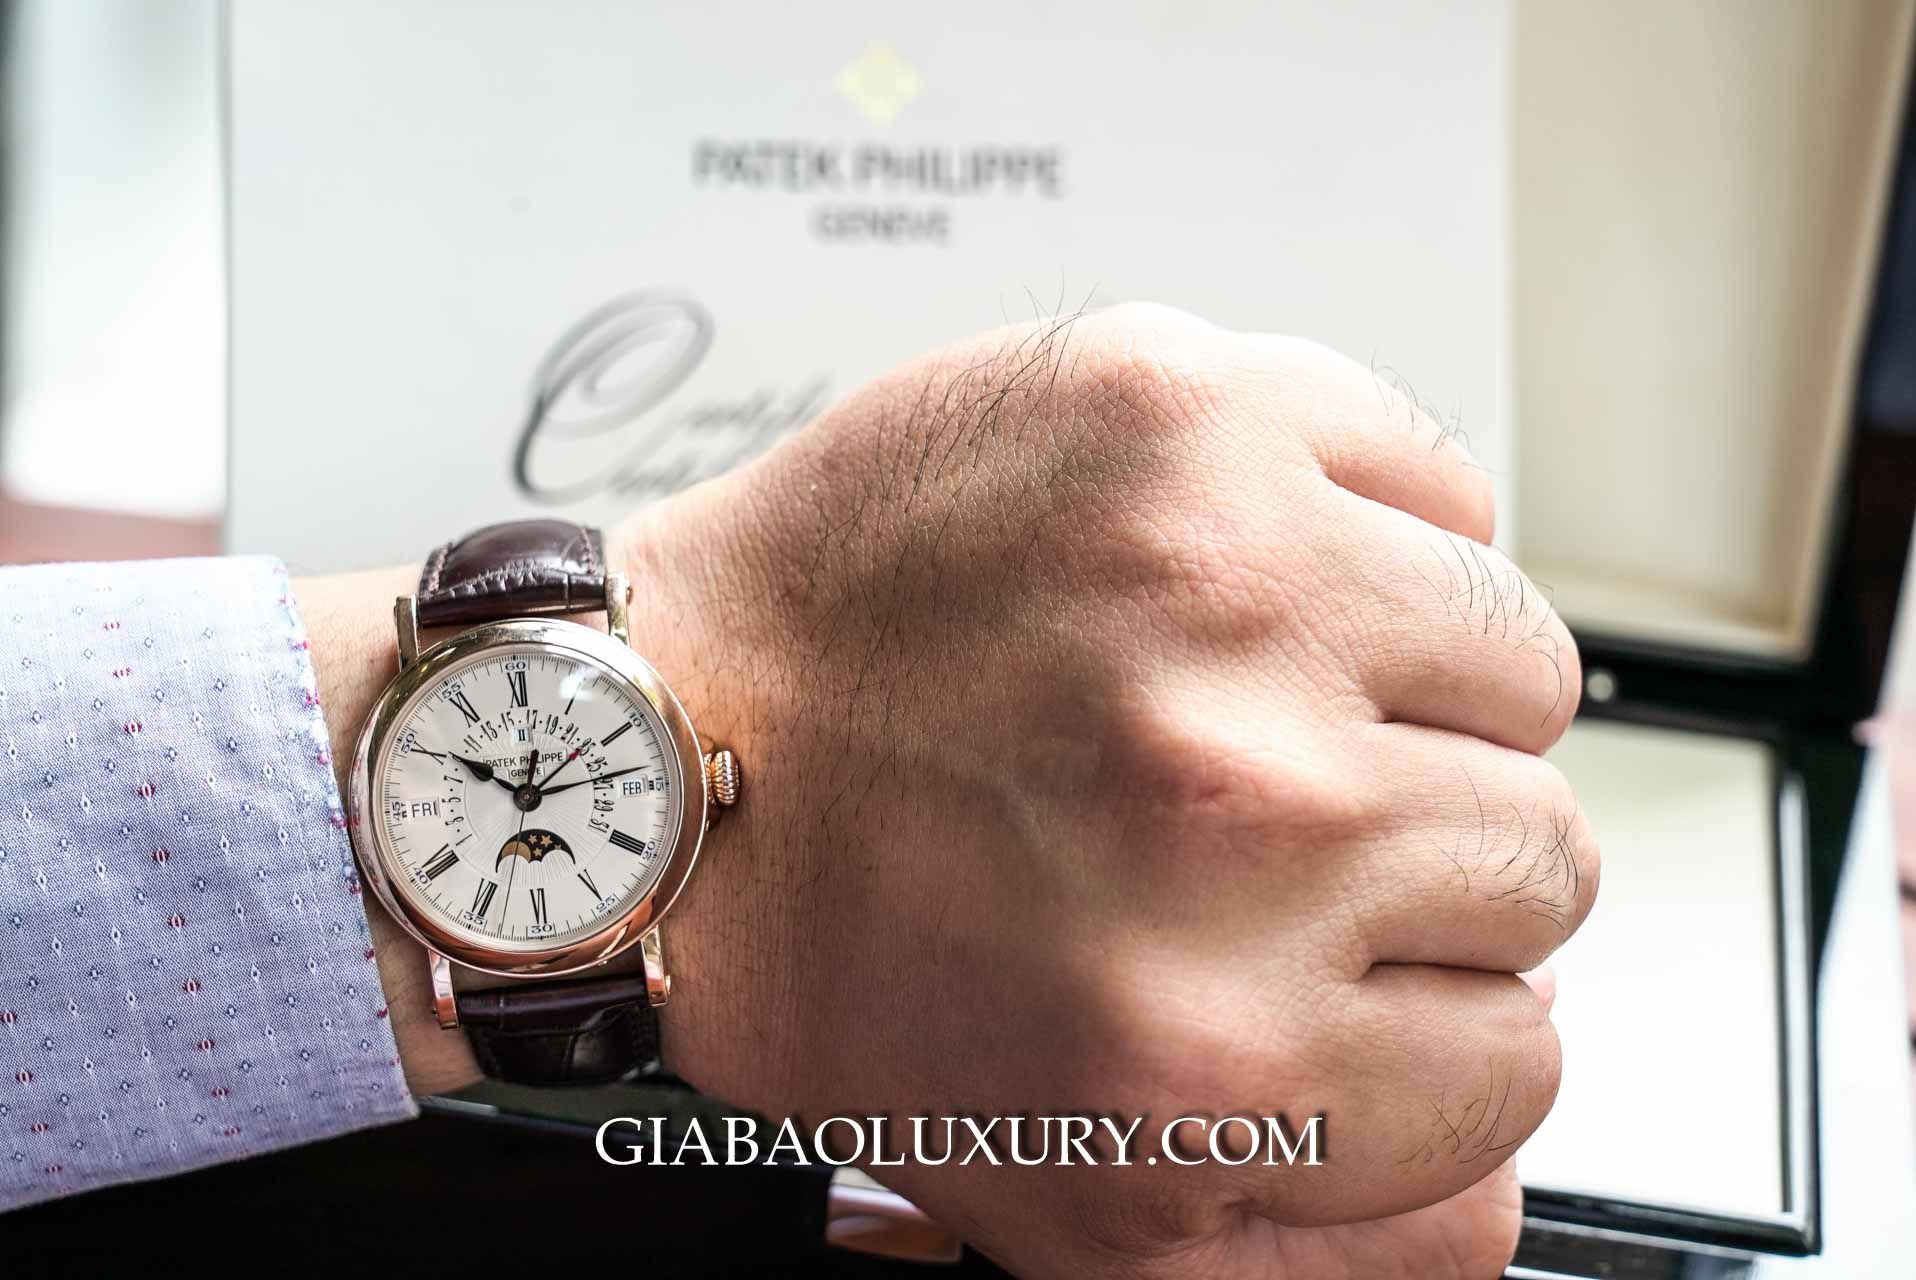 Đồng hồ Patek Philippe Grand Complications 5159R-001